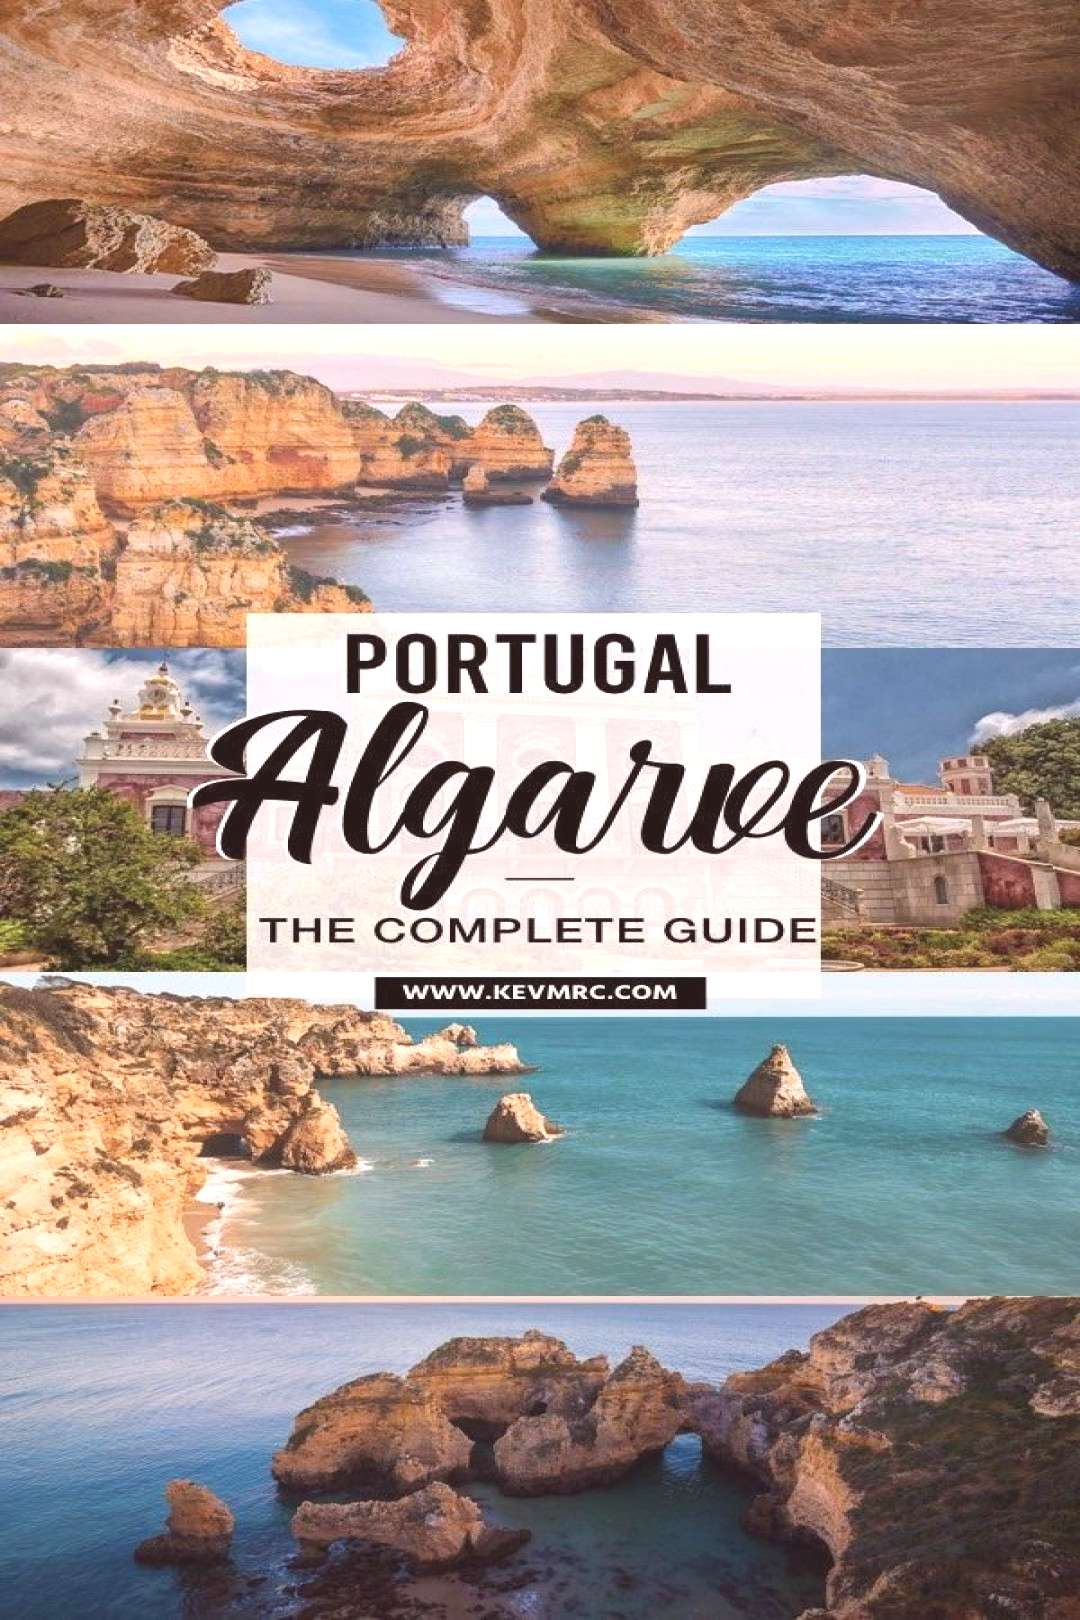 Algarve is the south coast of Portugal, and it's filled with incredible beaches and places to see